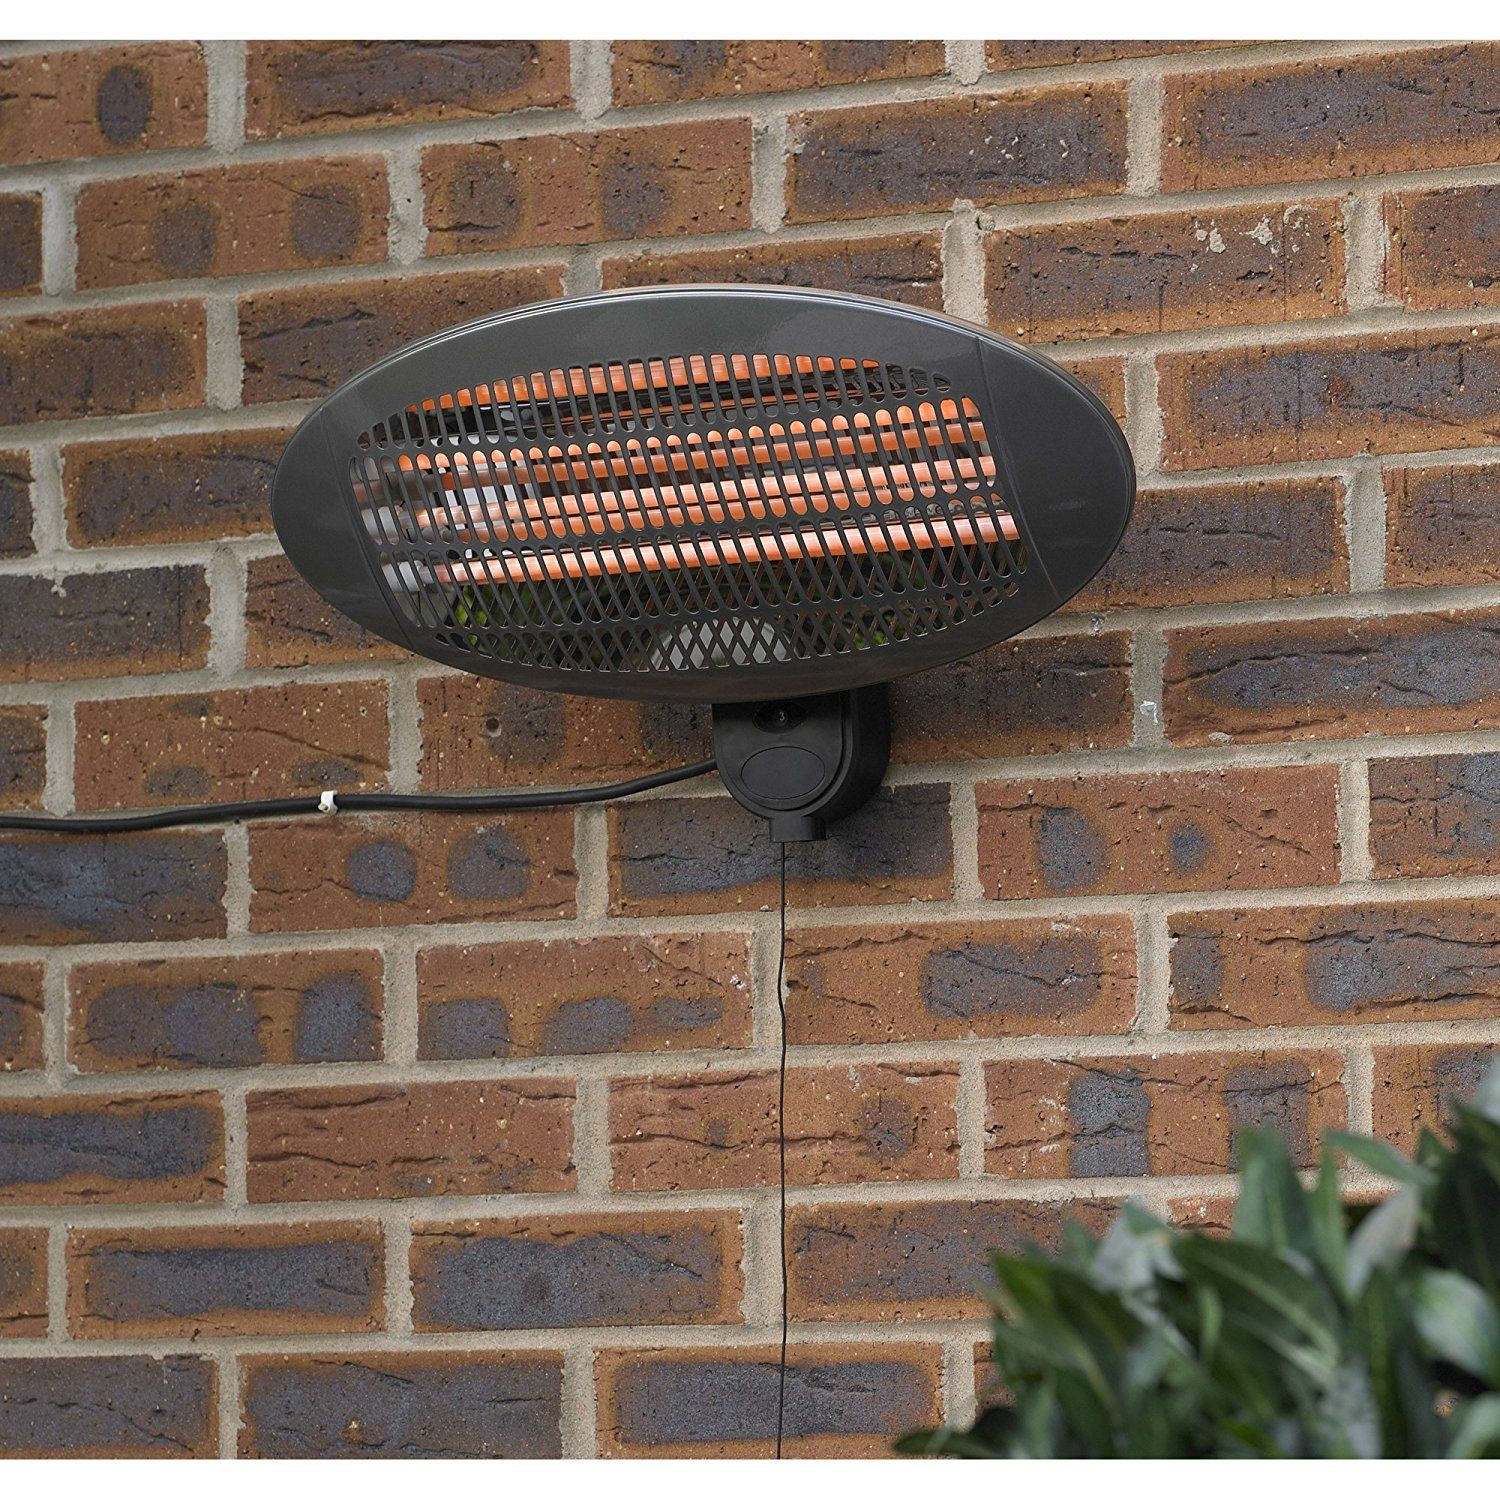 Kingfisher HEAT1300 Wall Mounted Electric Patio Heater   Transparent